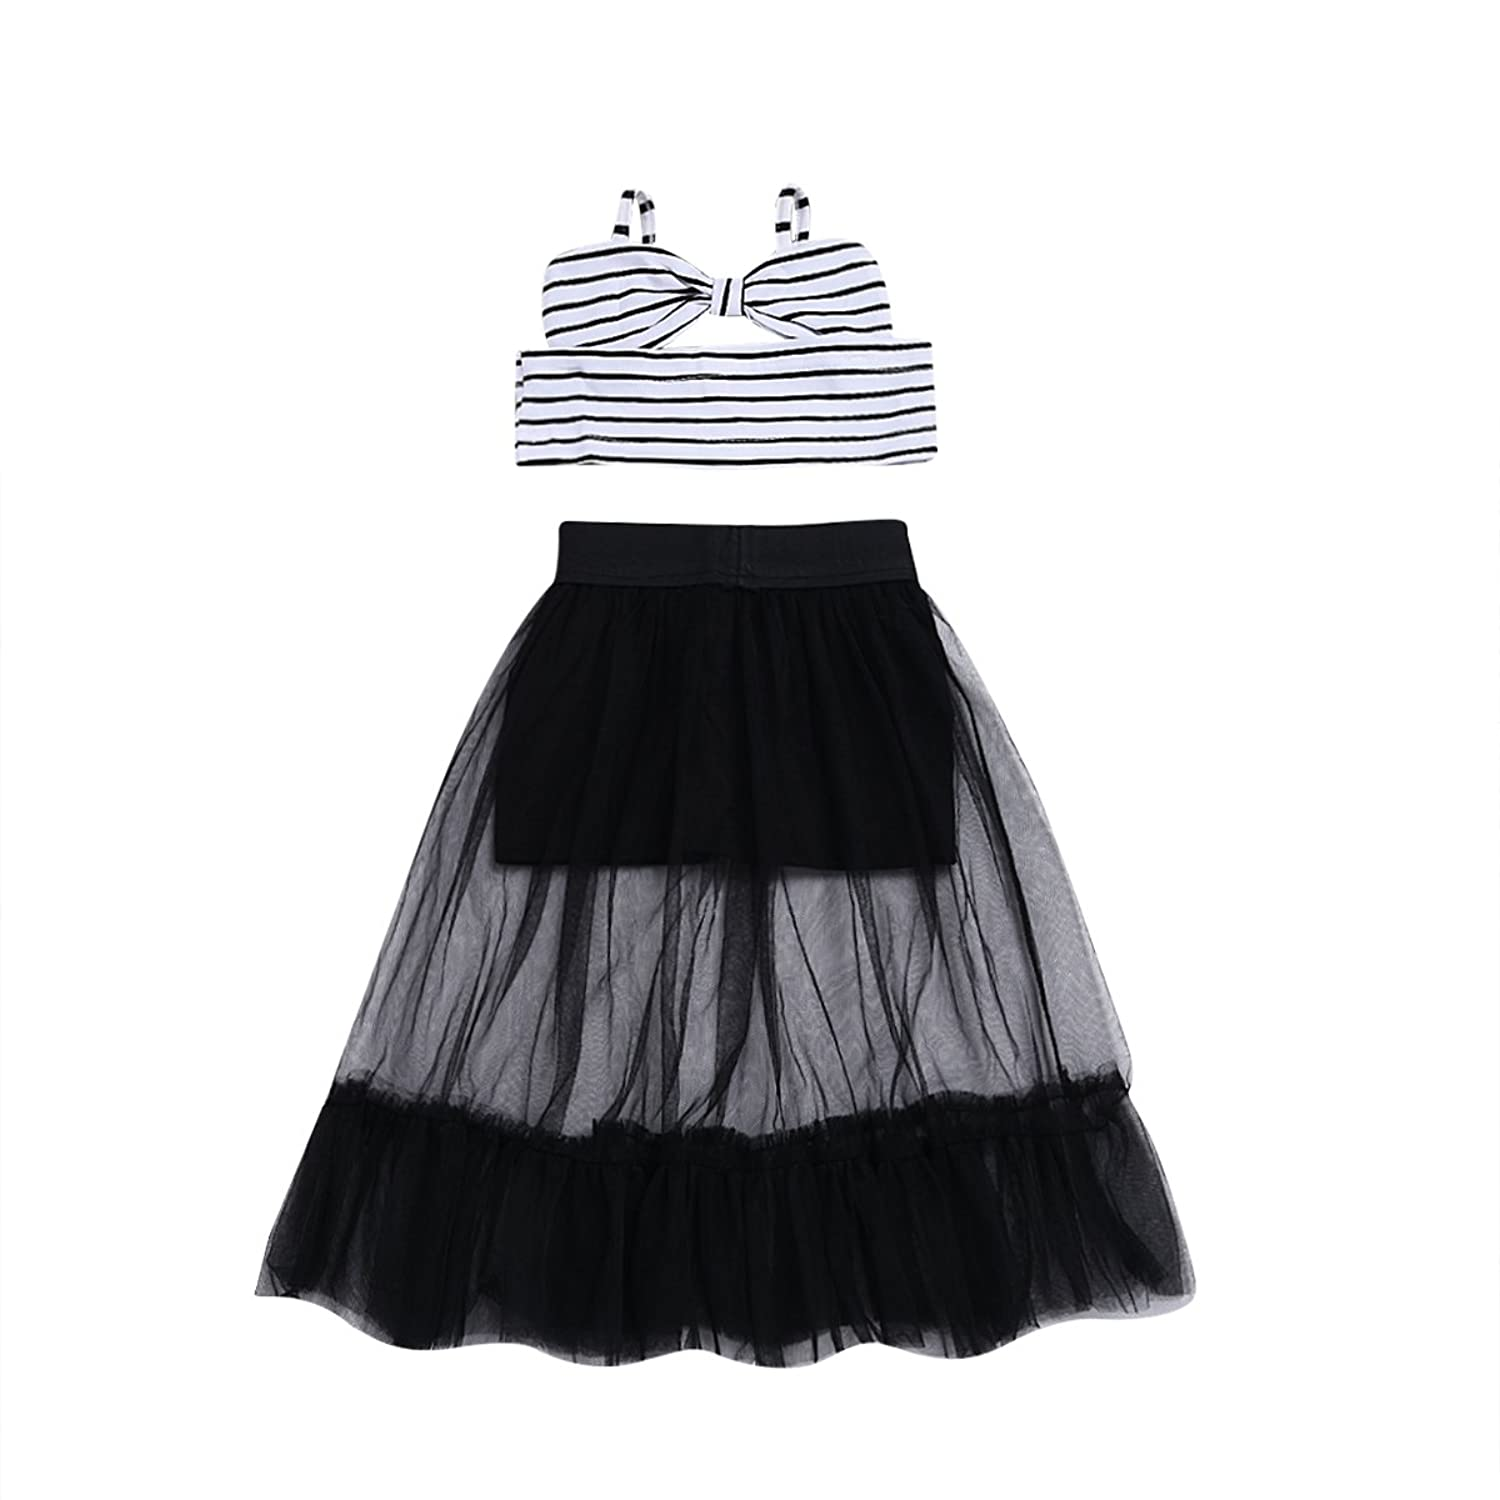 6f90a4edc0 ☆Infant toddler girl skirt set with bottom,Tulle spaghetti strap tank top  with bowknot,It makes your little charming and pretty.the best dress for  your ...